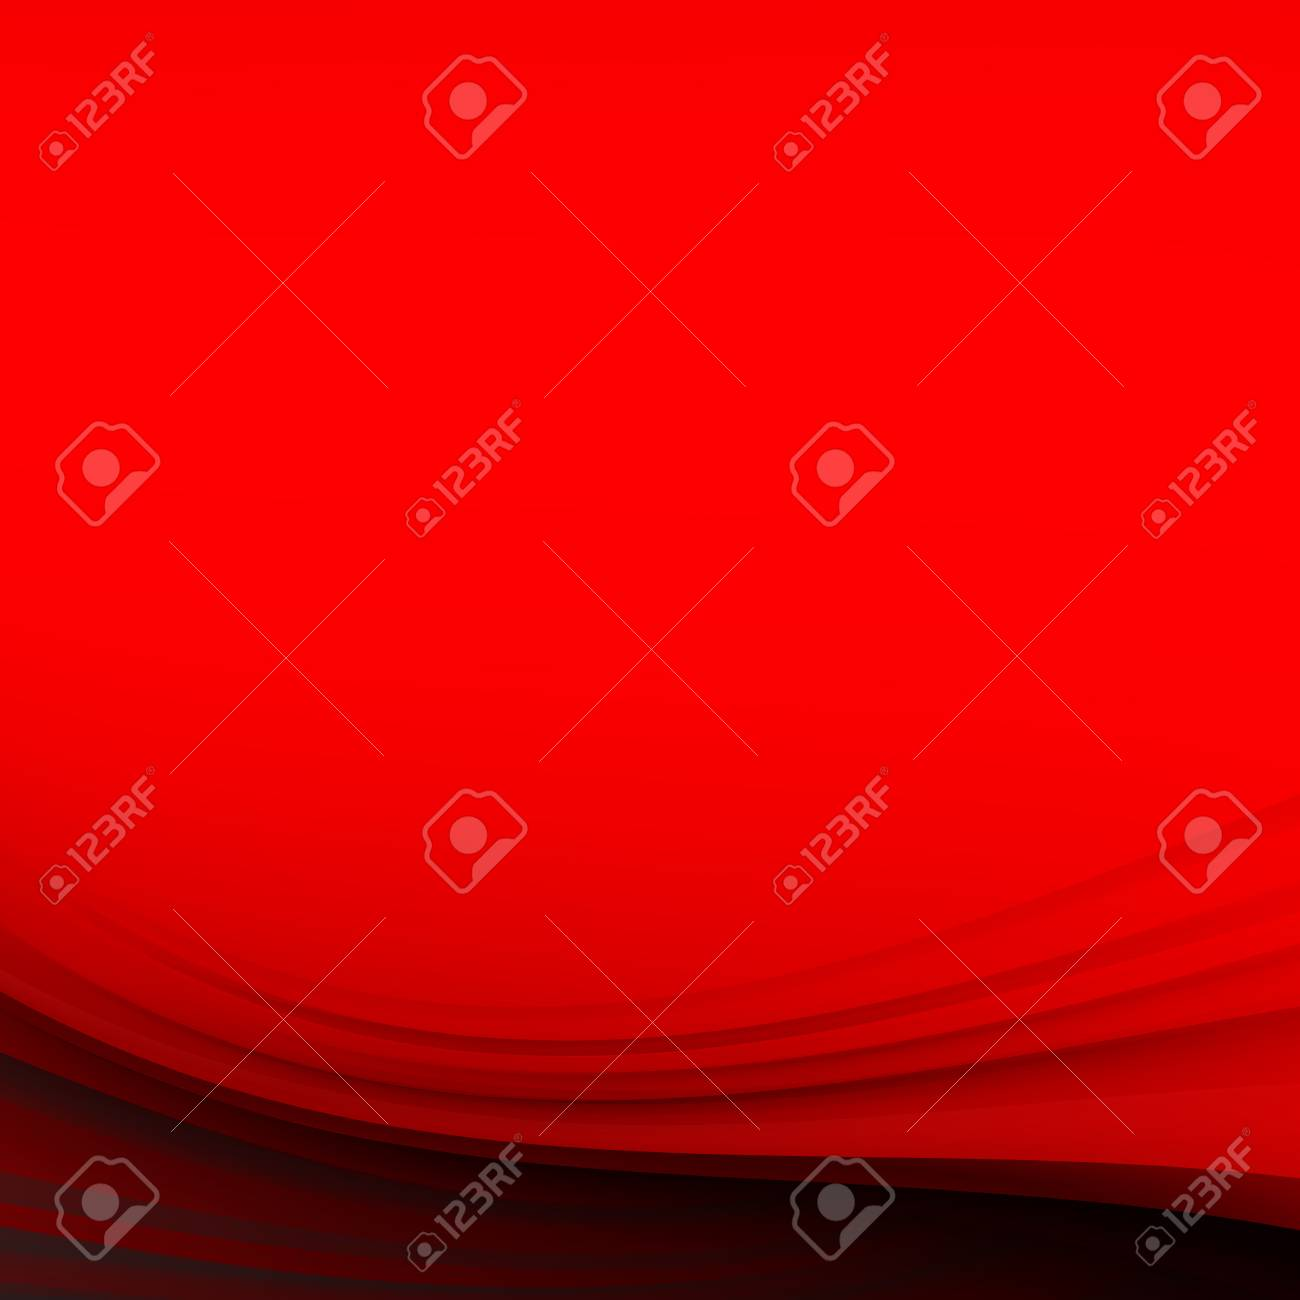 Red Abstract Background. Vector Illustration - 52119388